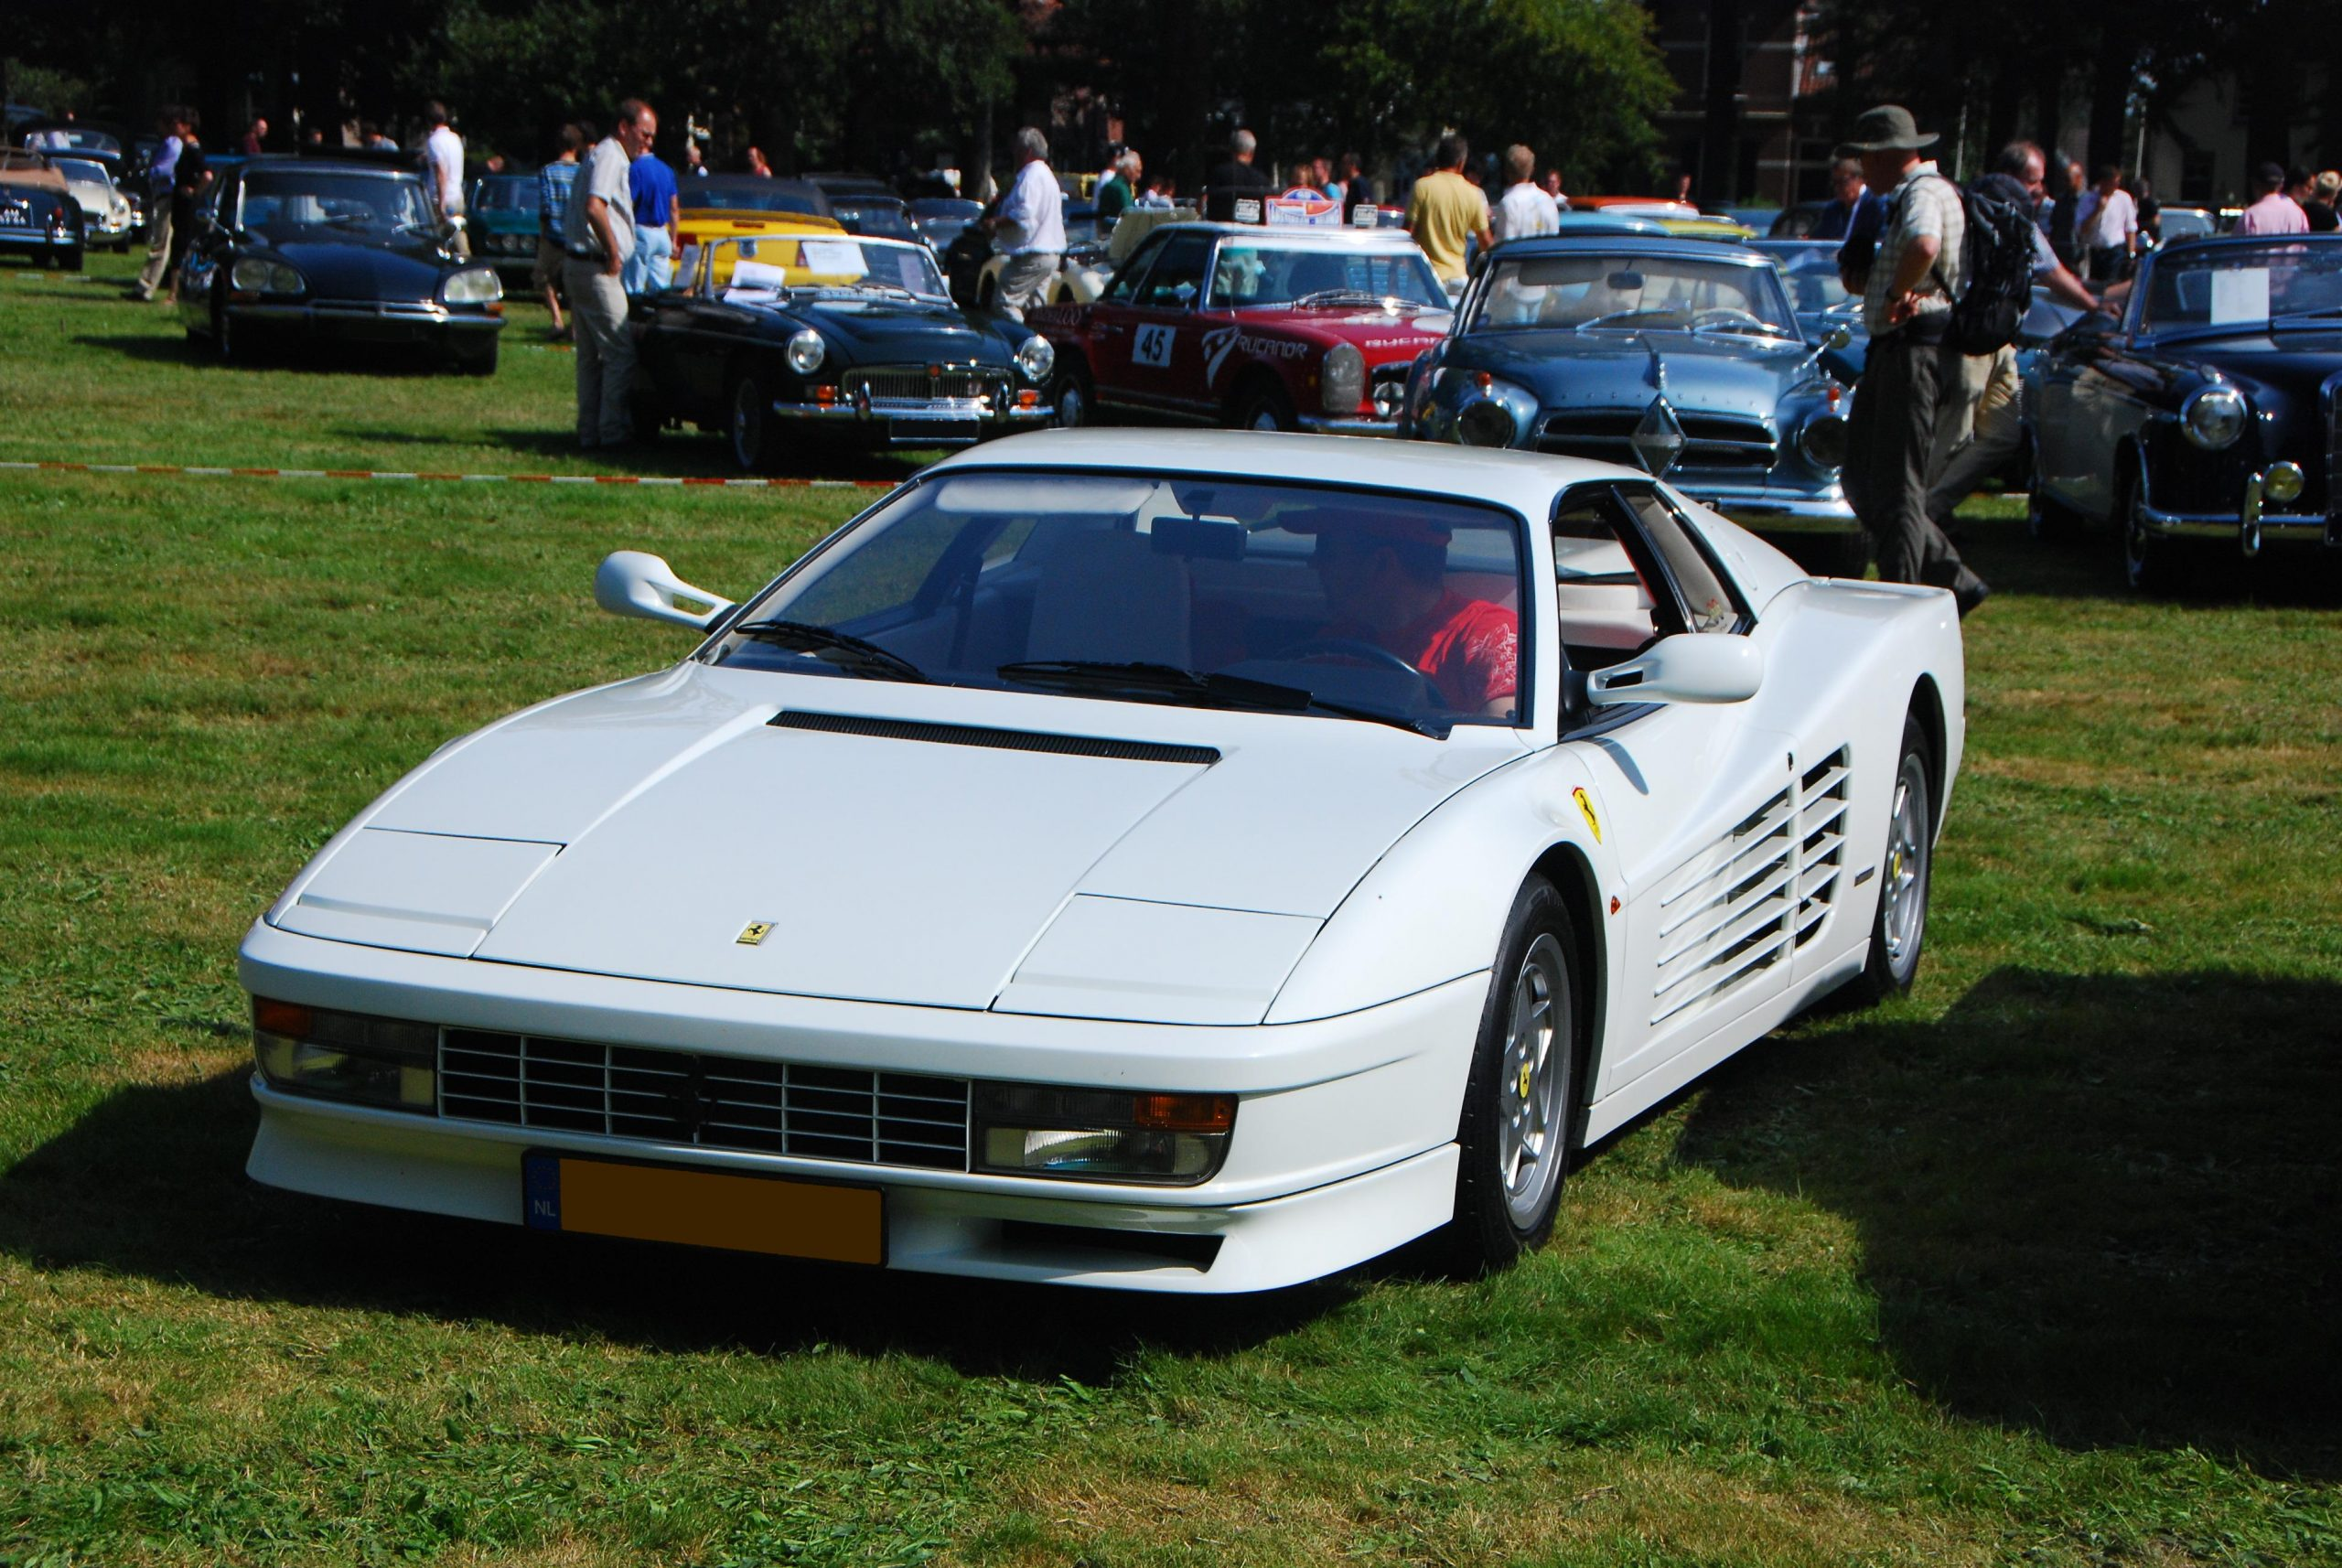 Ferrari Testarossa Apeldoorn NL scaled Legendary 1980s TV & Movie Vehicles That Sold For A Fortune At Auction